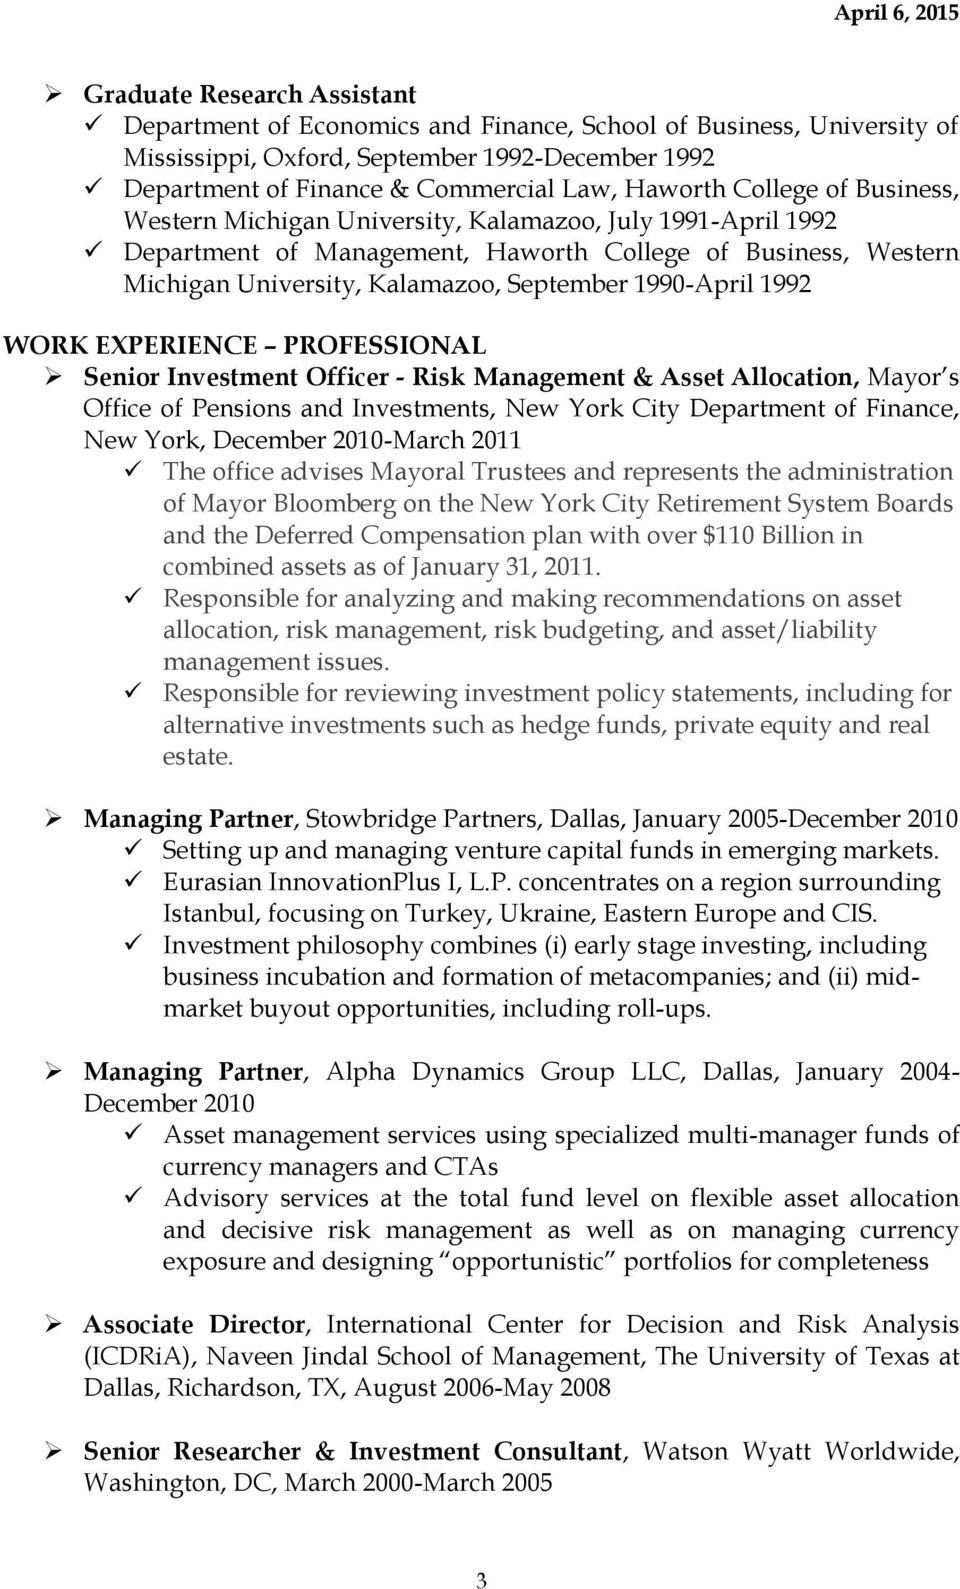 1992 WORK EXPERIENCE PROFESSIONAL Senior Investment Officer - Risk Management & Asset Allocation, Mayor s Office of Pensions and Investments, New York City Department of Finance, New York, December